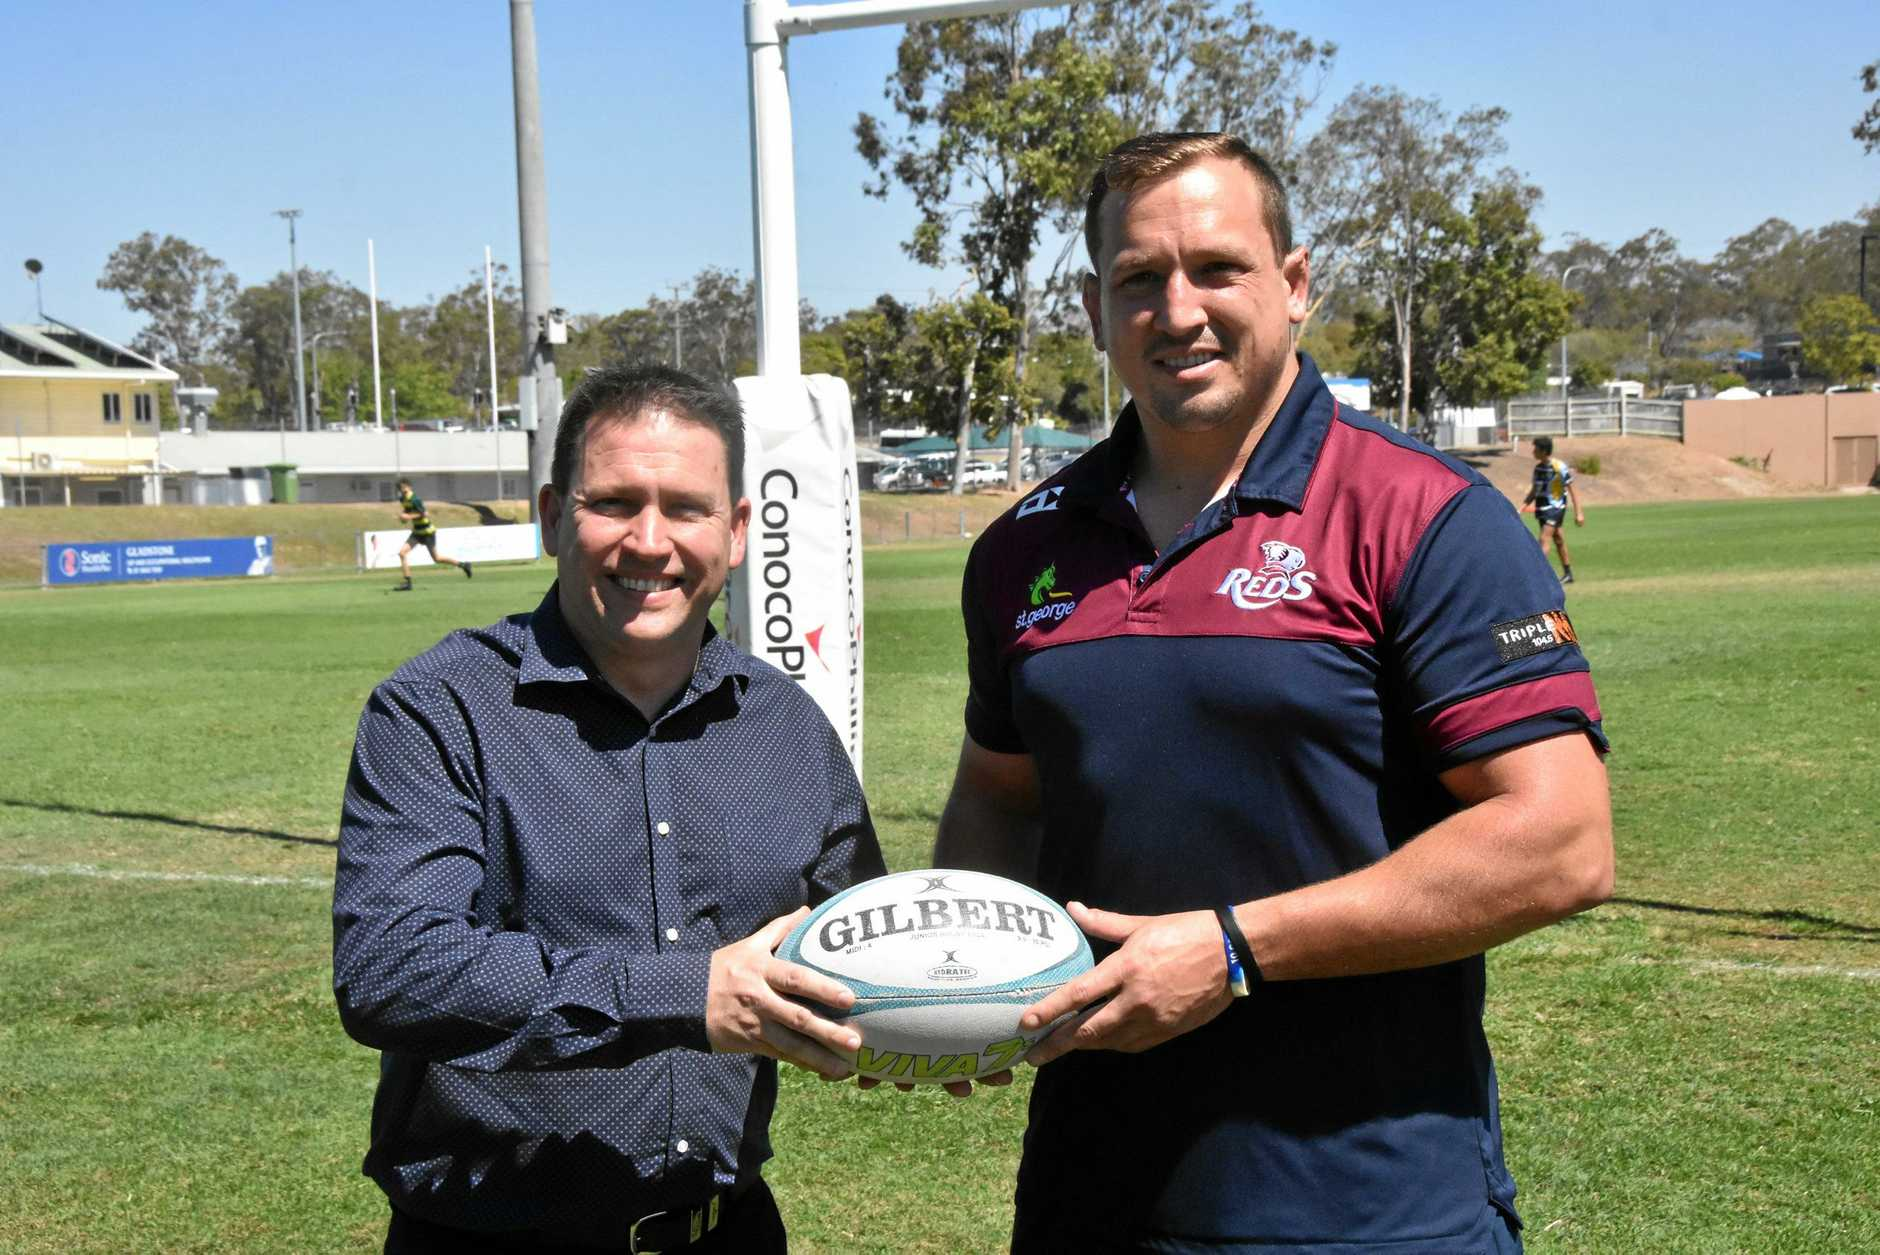 MAIN GAME: Gladstone mayor Matt Burnett with Queensland Reds player JP Smith at Marley Brown Oval ahead of the National Rugby Championship match between Queensland Country and Brisbane City on September 28.